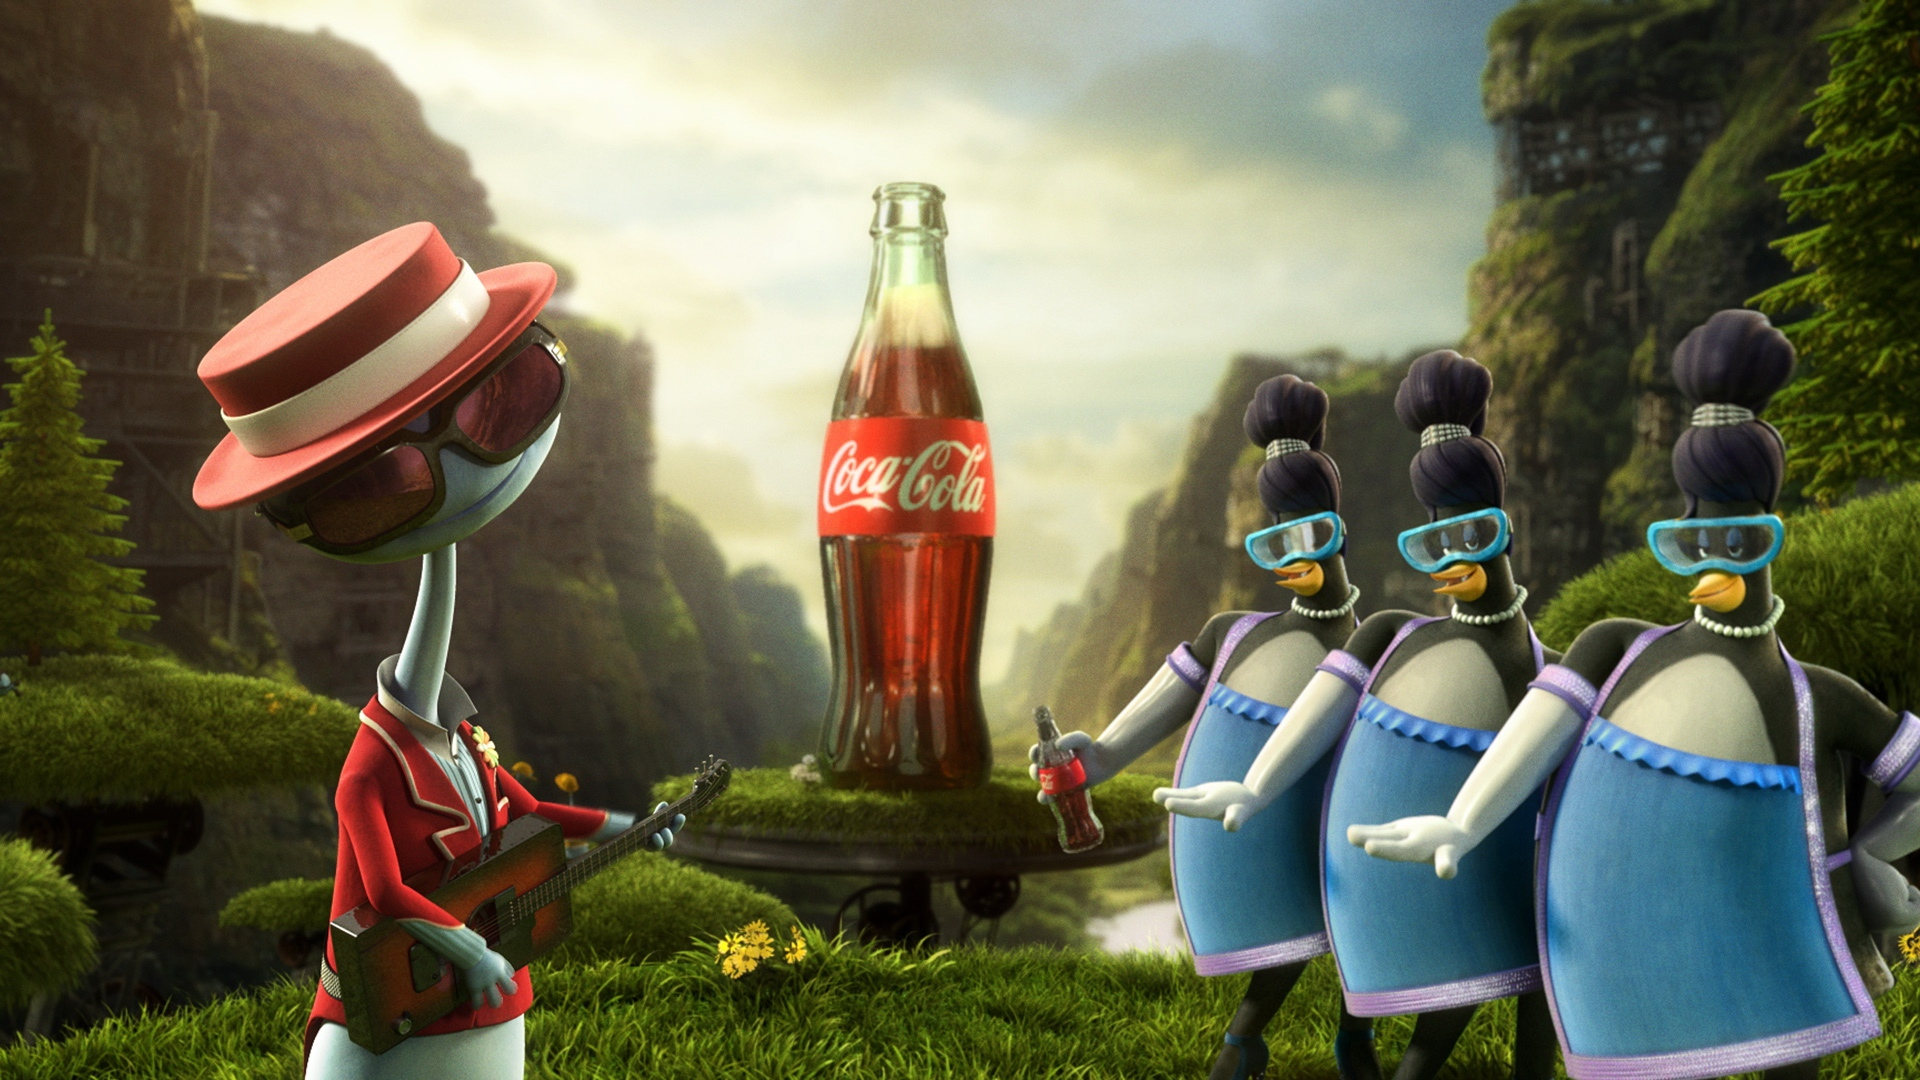 Earnings Disclaimer >> Download Wallpaper 1920x1080 coca-cola, images, drink ...